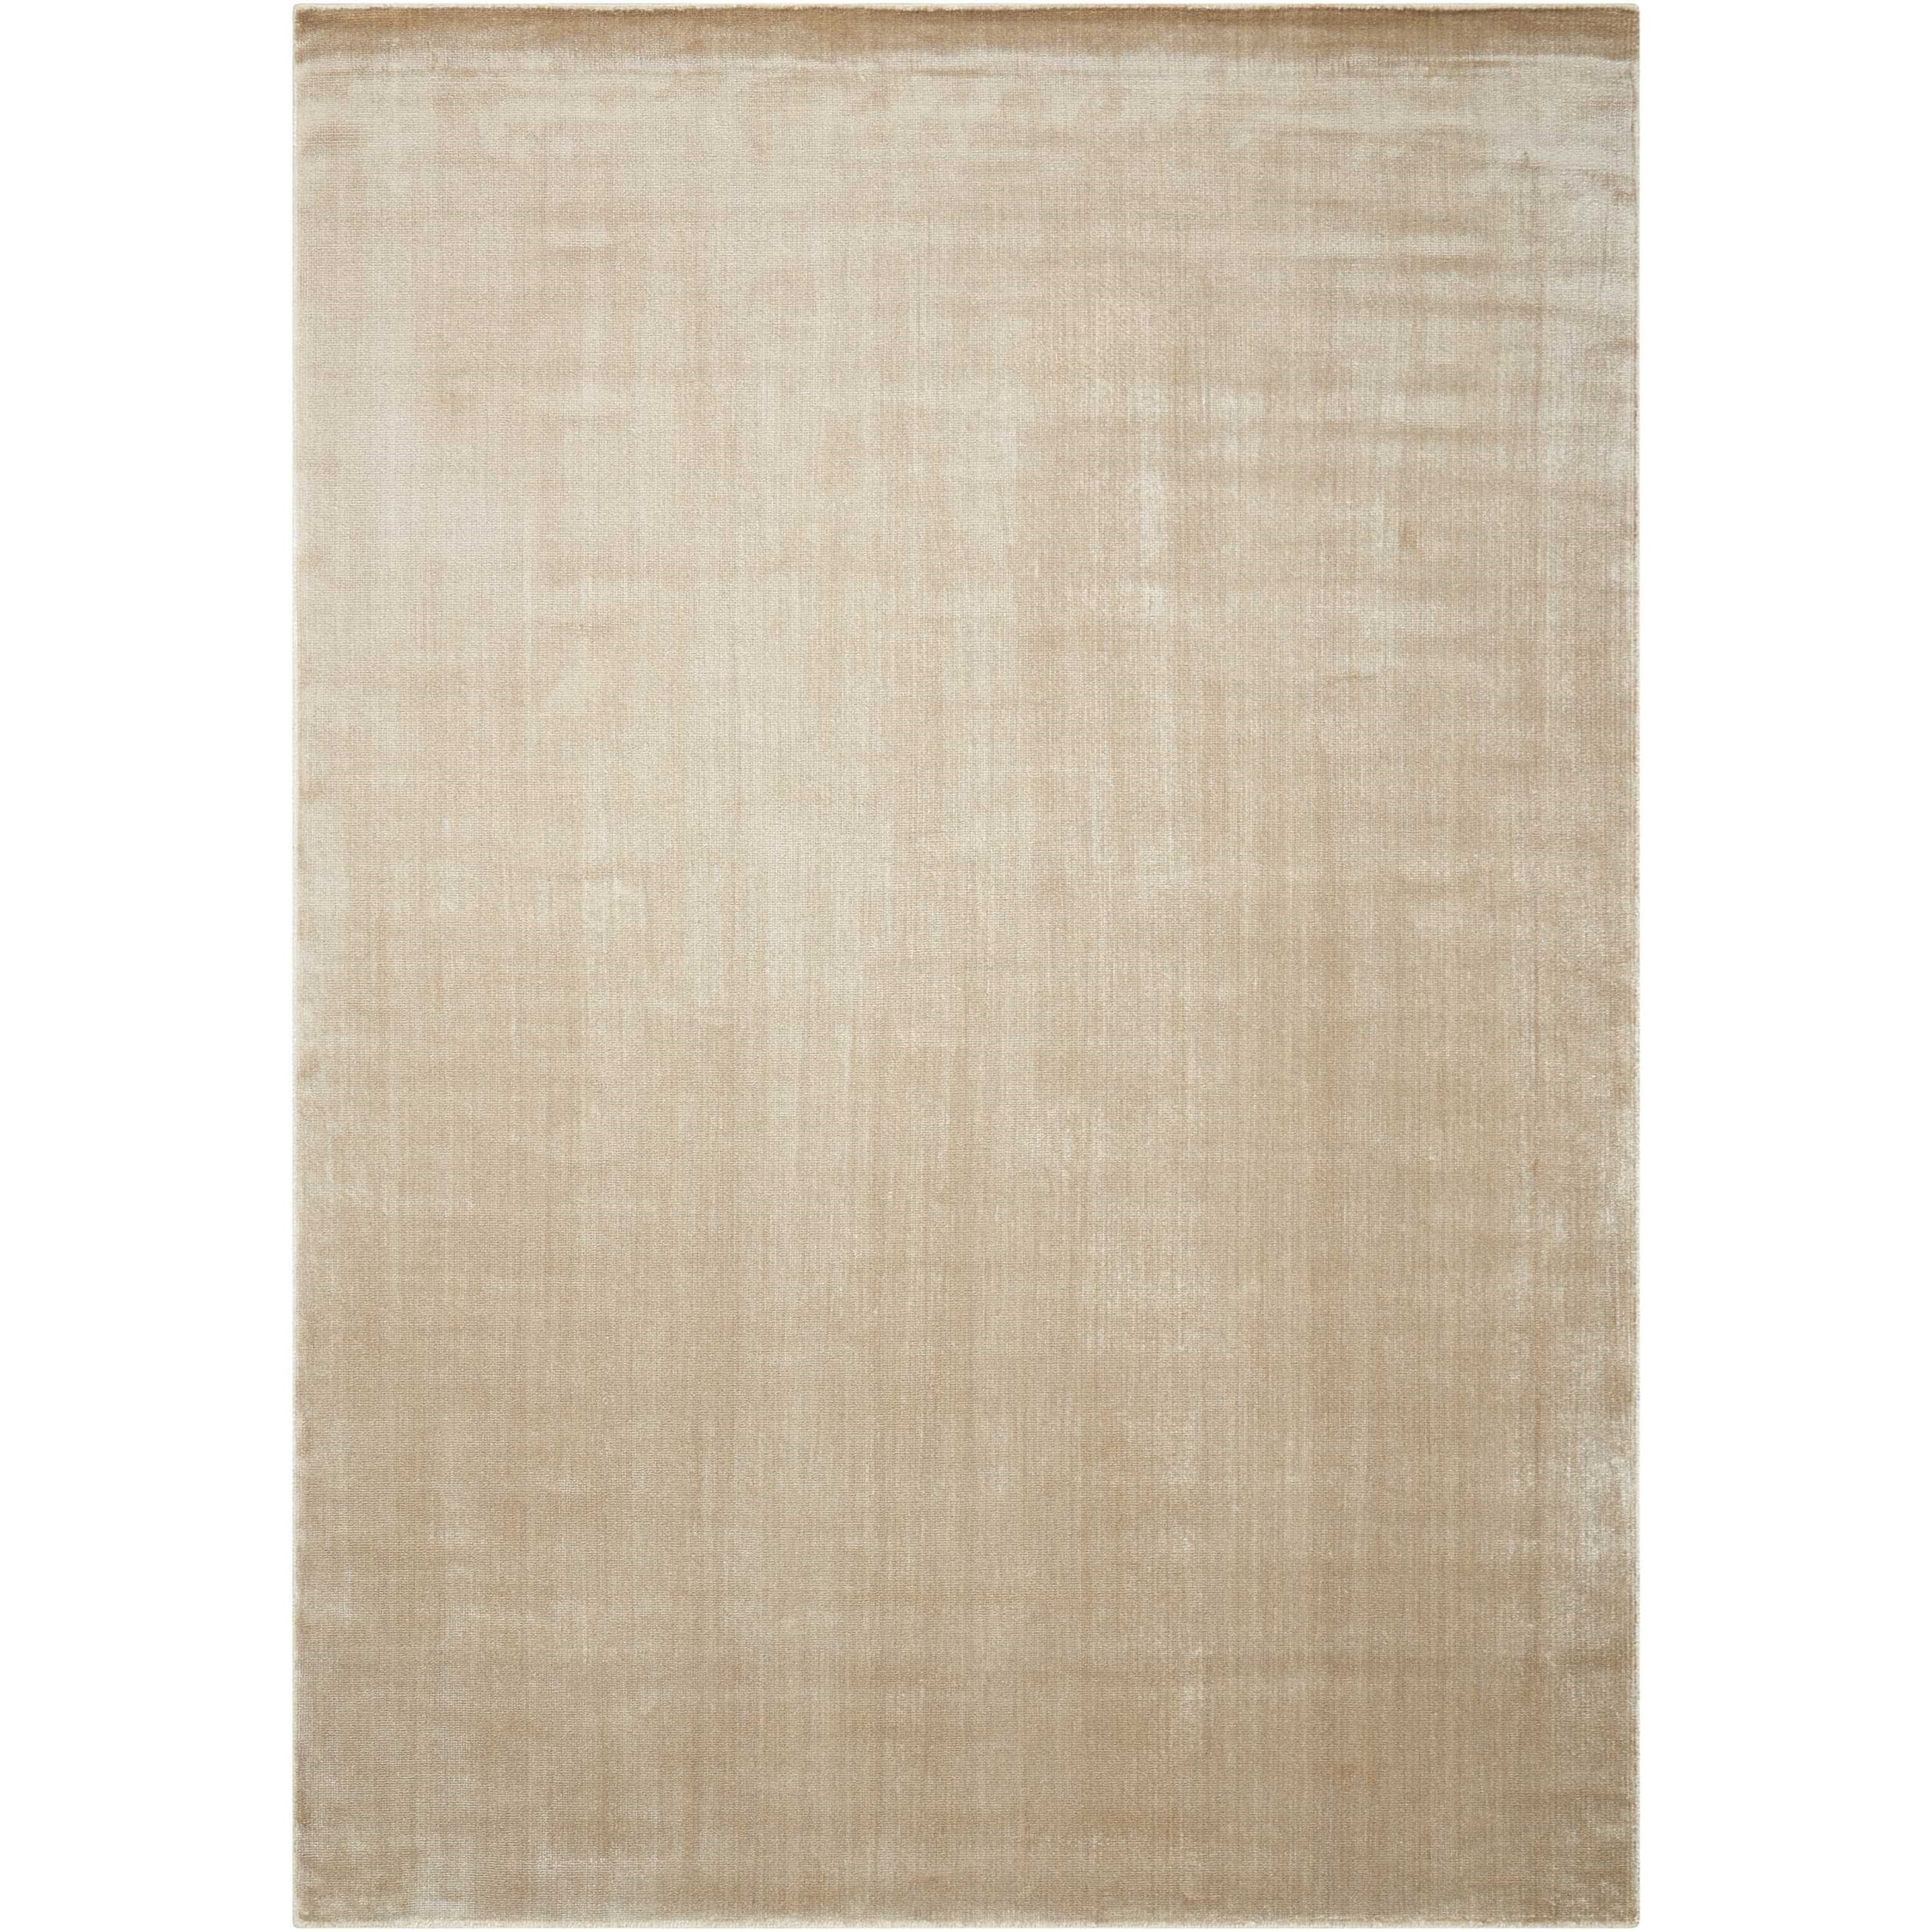 """Starlight 7'6"""" x 10'6"""" Opal Rectangle Rug by Nourison at Home Collections Furniture"""